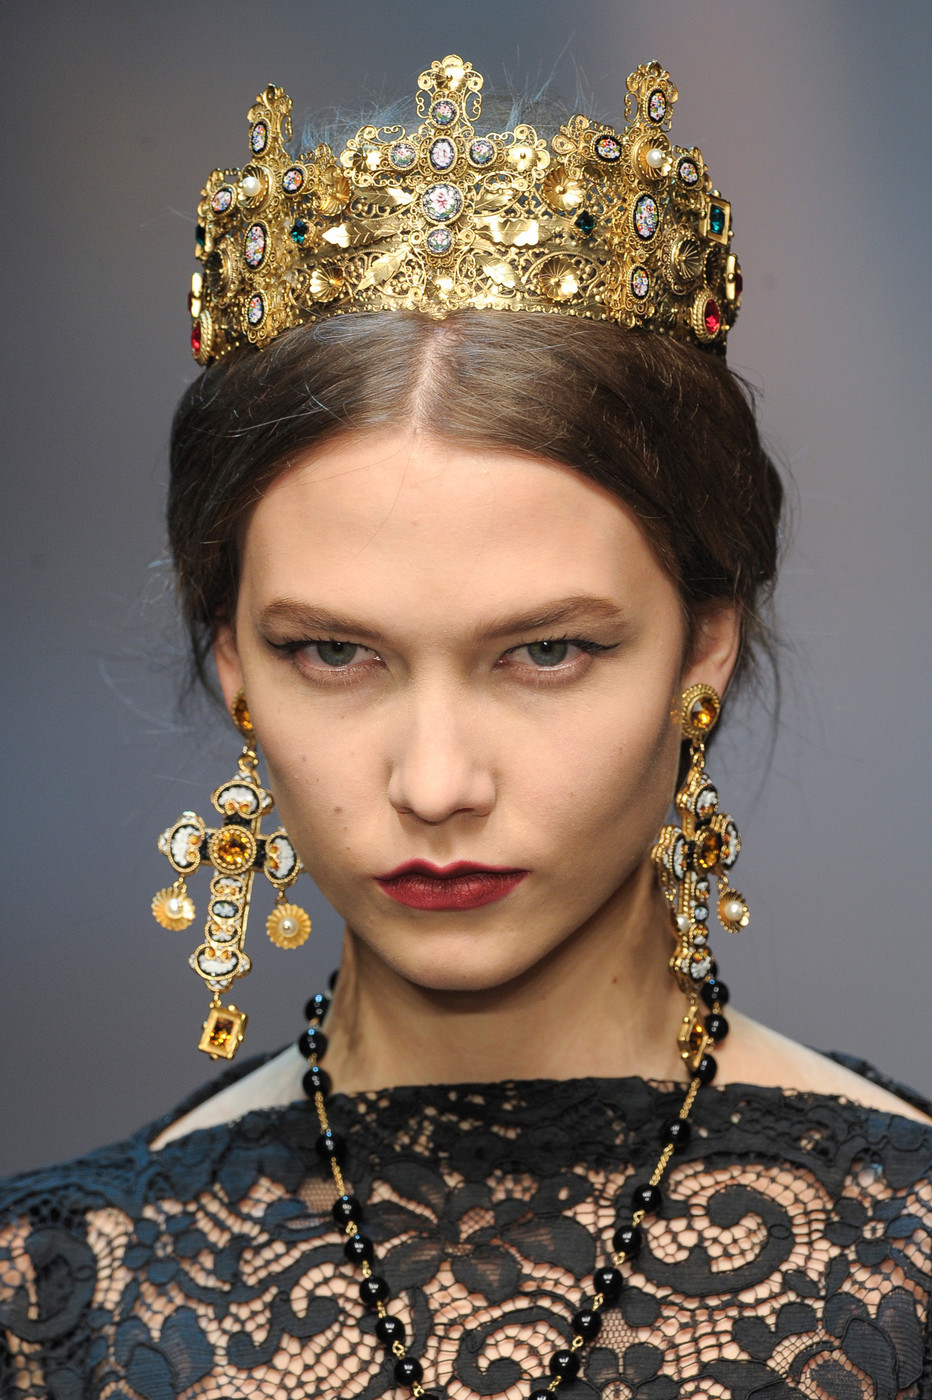 Karlie Kloss at Dolce and Gabbana RTW Fall 2013